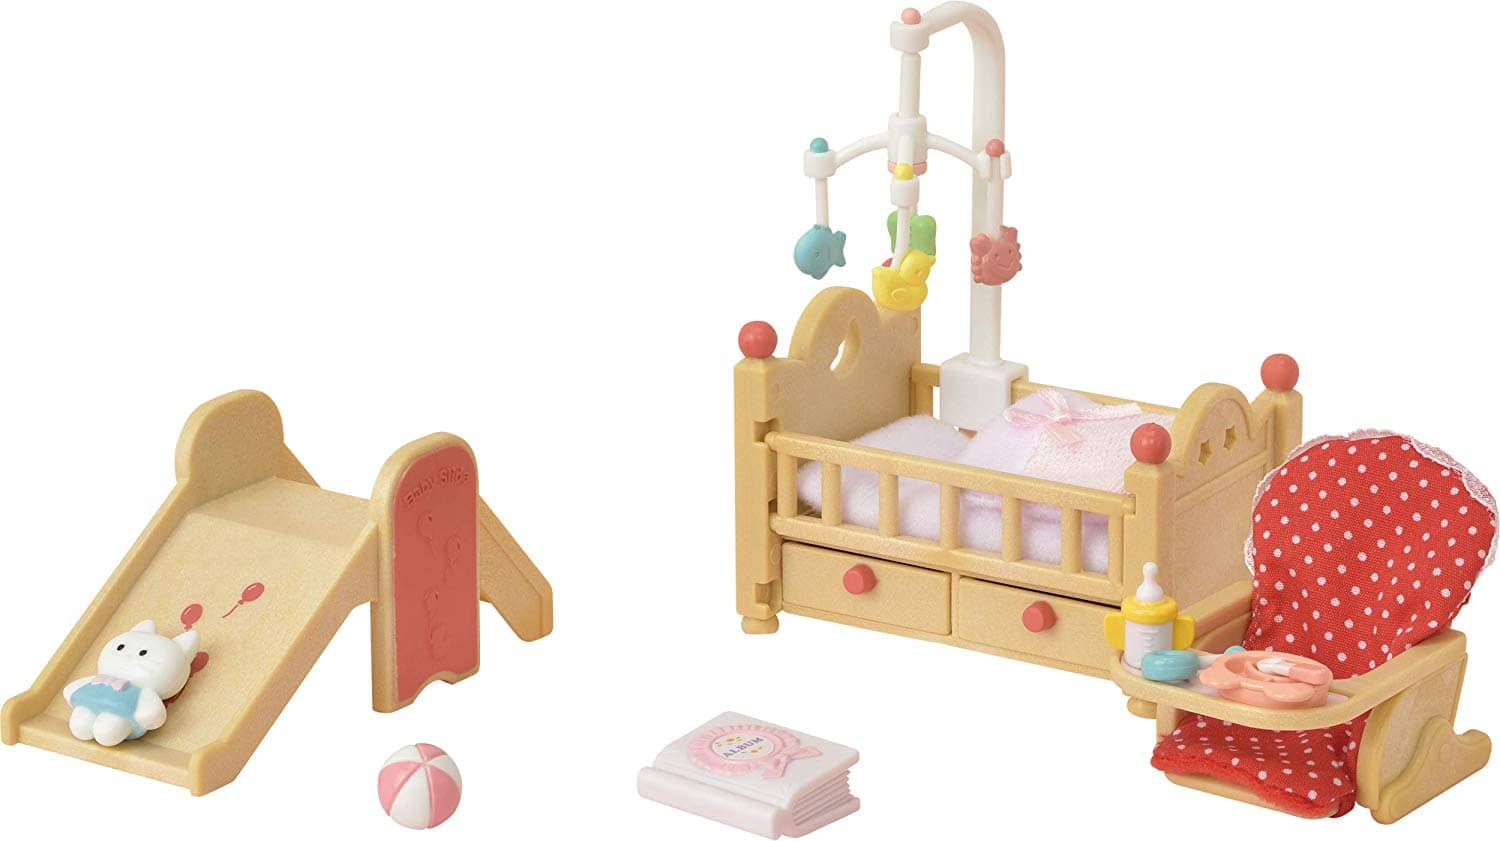 Calico Critters Baby Nursery Set $4.98 at Amazon. 75% off. Lowest Price per CCC. Free Shipping with Prime